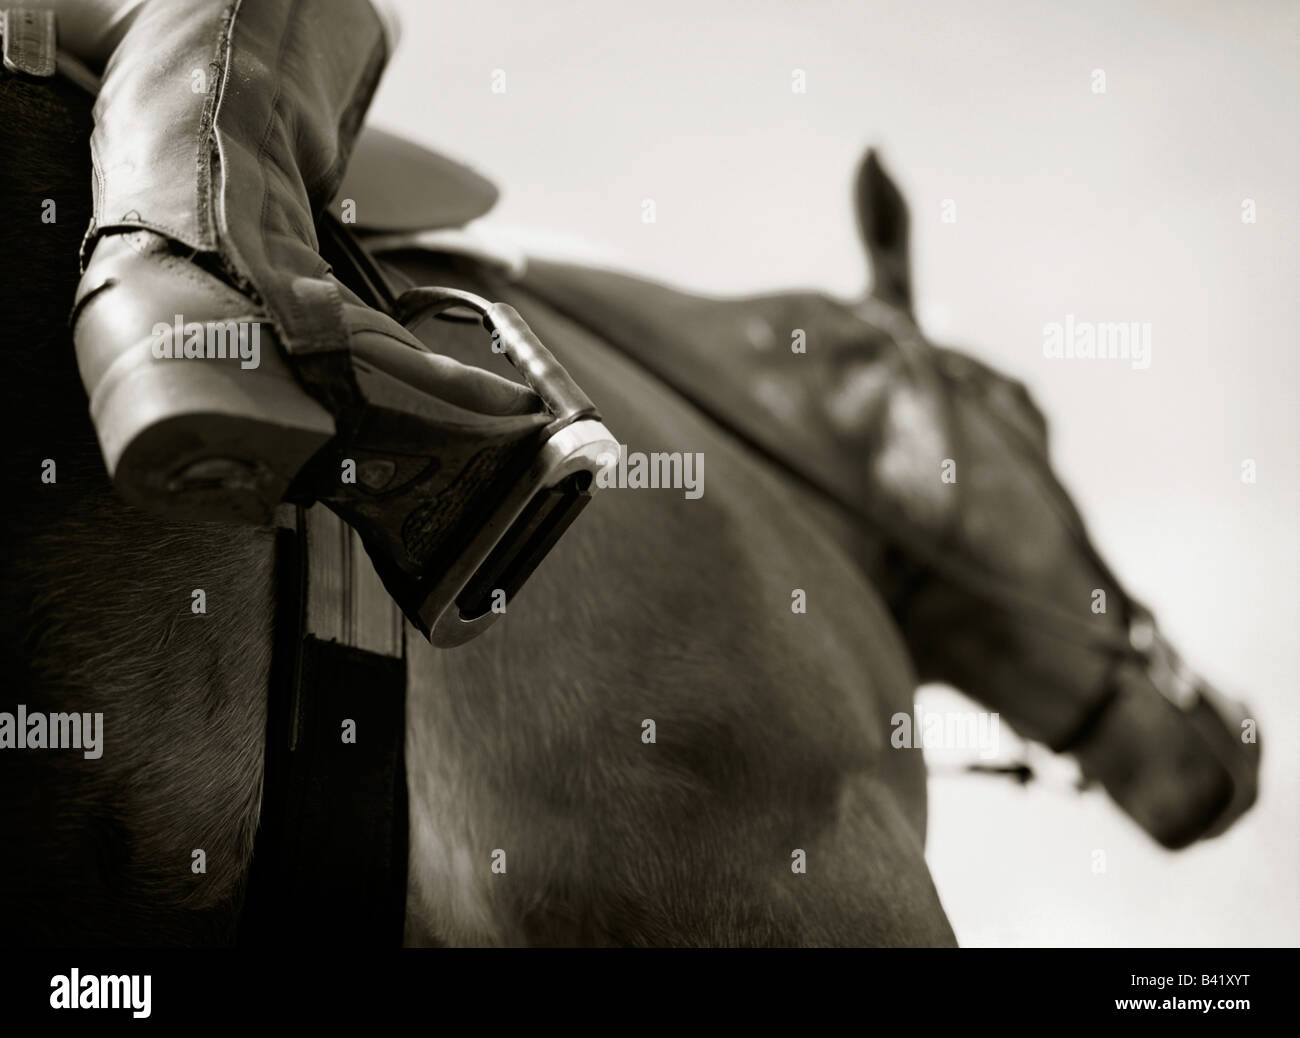 A rider's boot is resting in the stirrup of an English saddle. - Stock Image